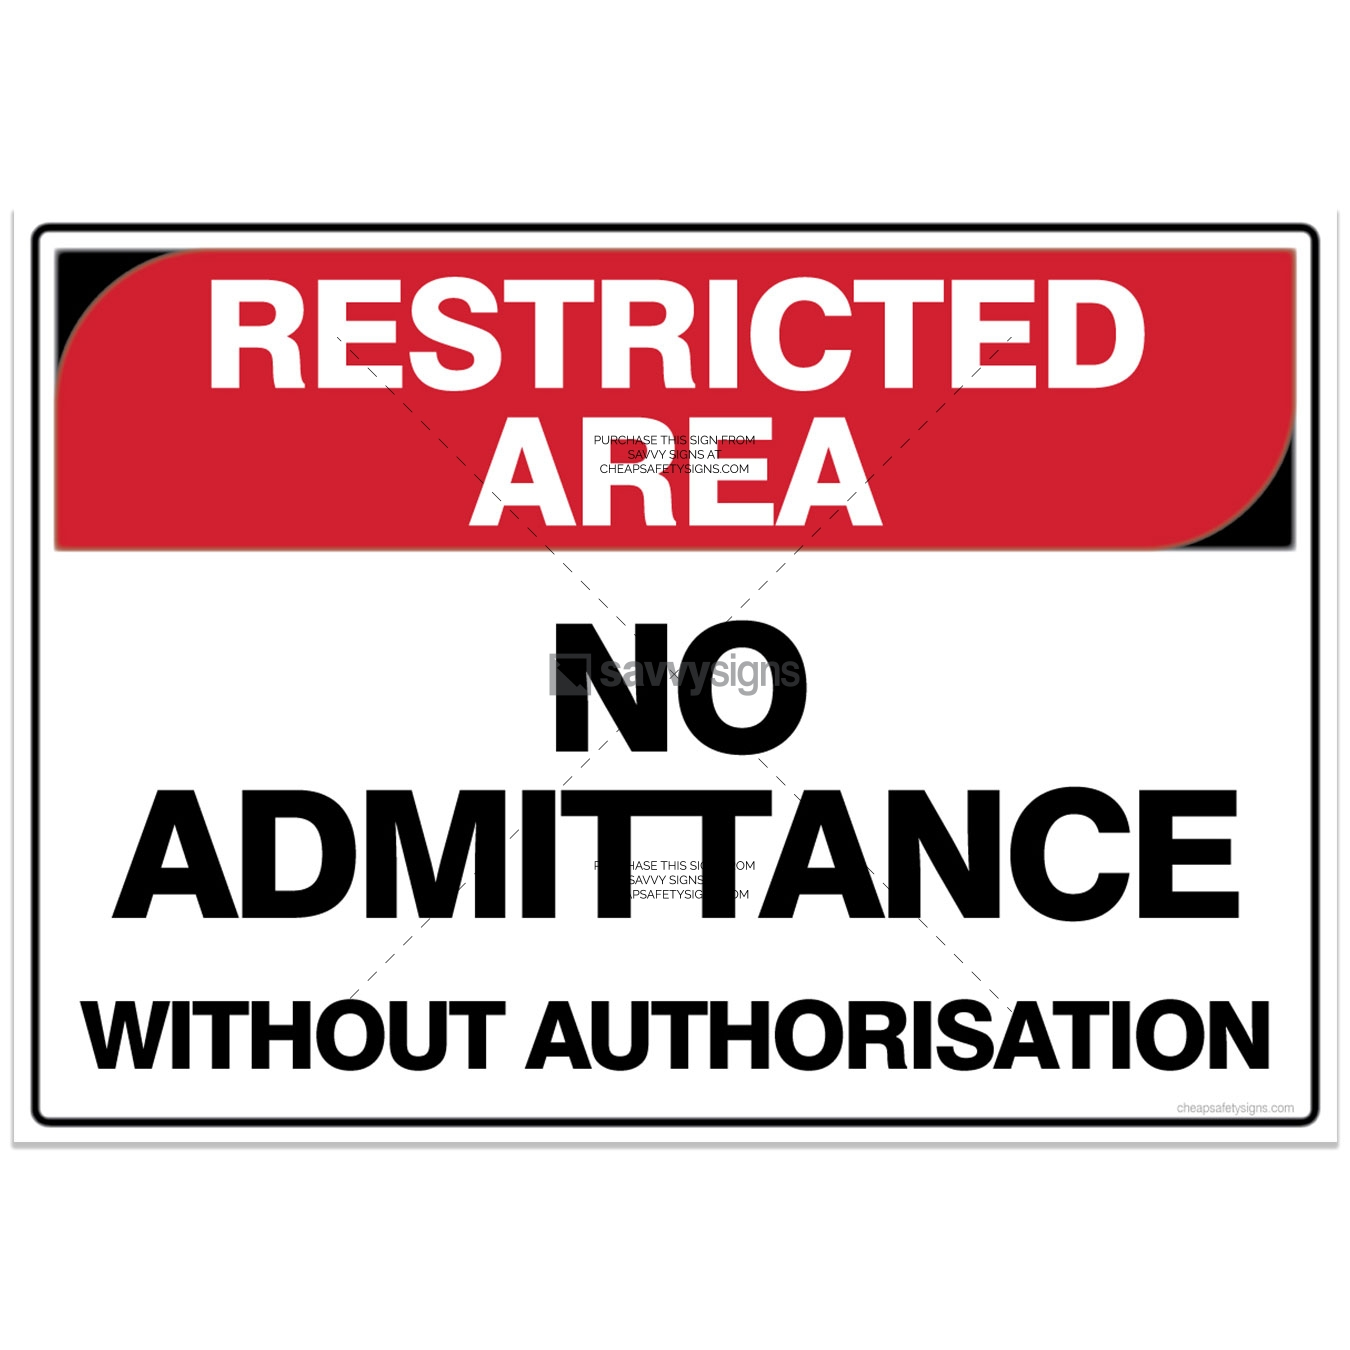 SSRES3022-RESTRICTED-AREA-Workplace-Safety-Signs_Savvy-Signs_v2